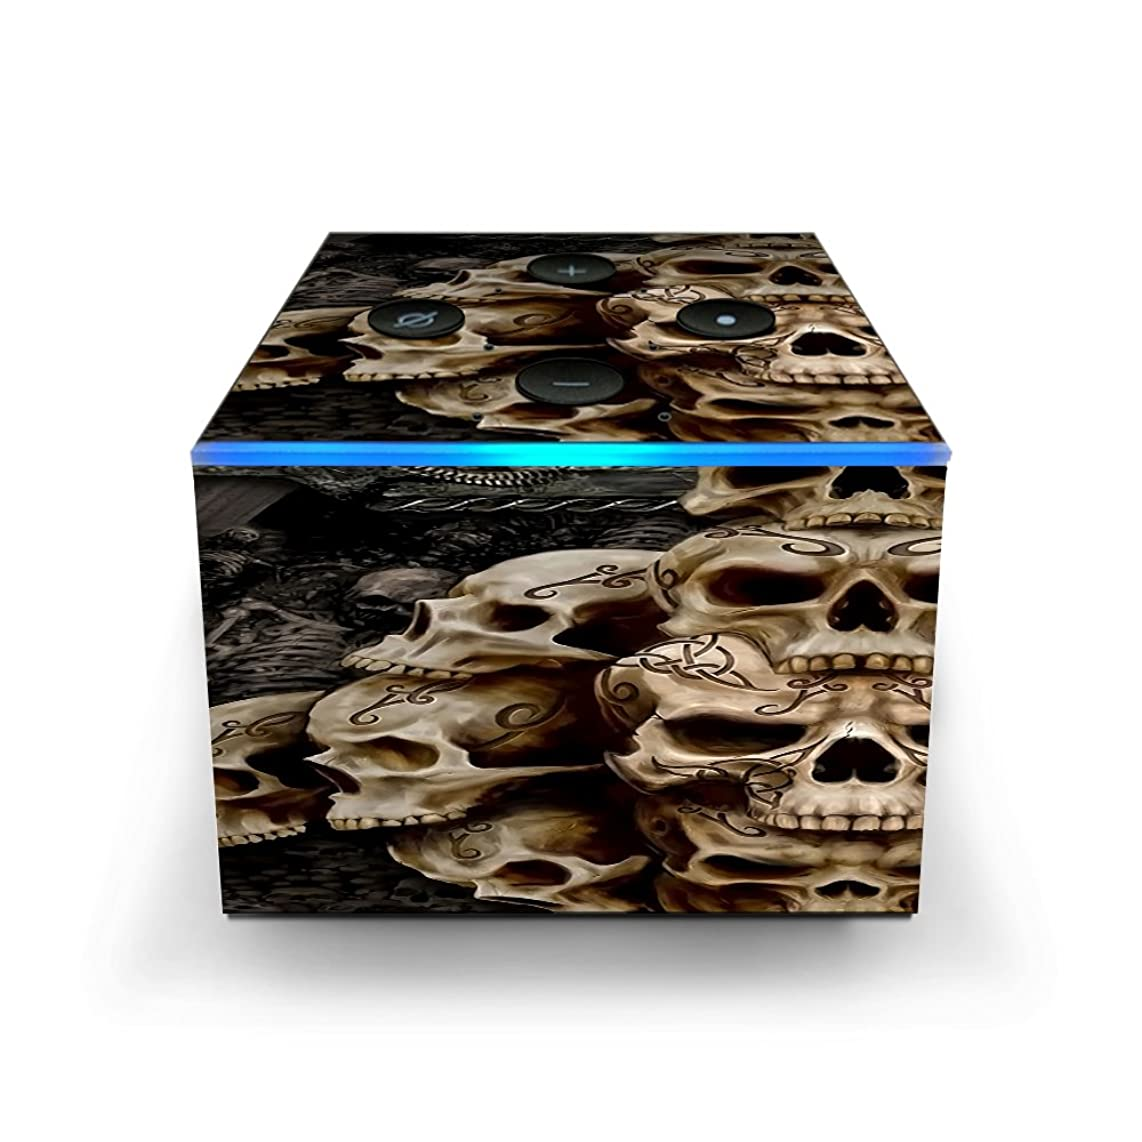 Skin Decal Vinyl Wrap for Amazon Fire TV Cube & Remote Alexa Skins Stickers Cover/Wicked Skulls Tattooed